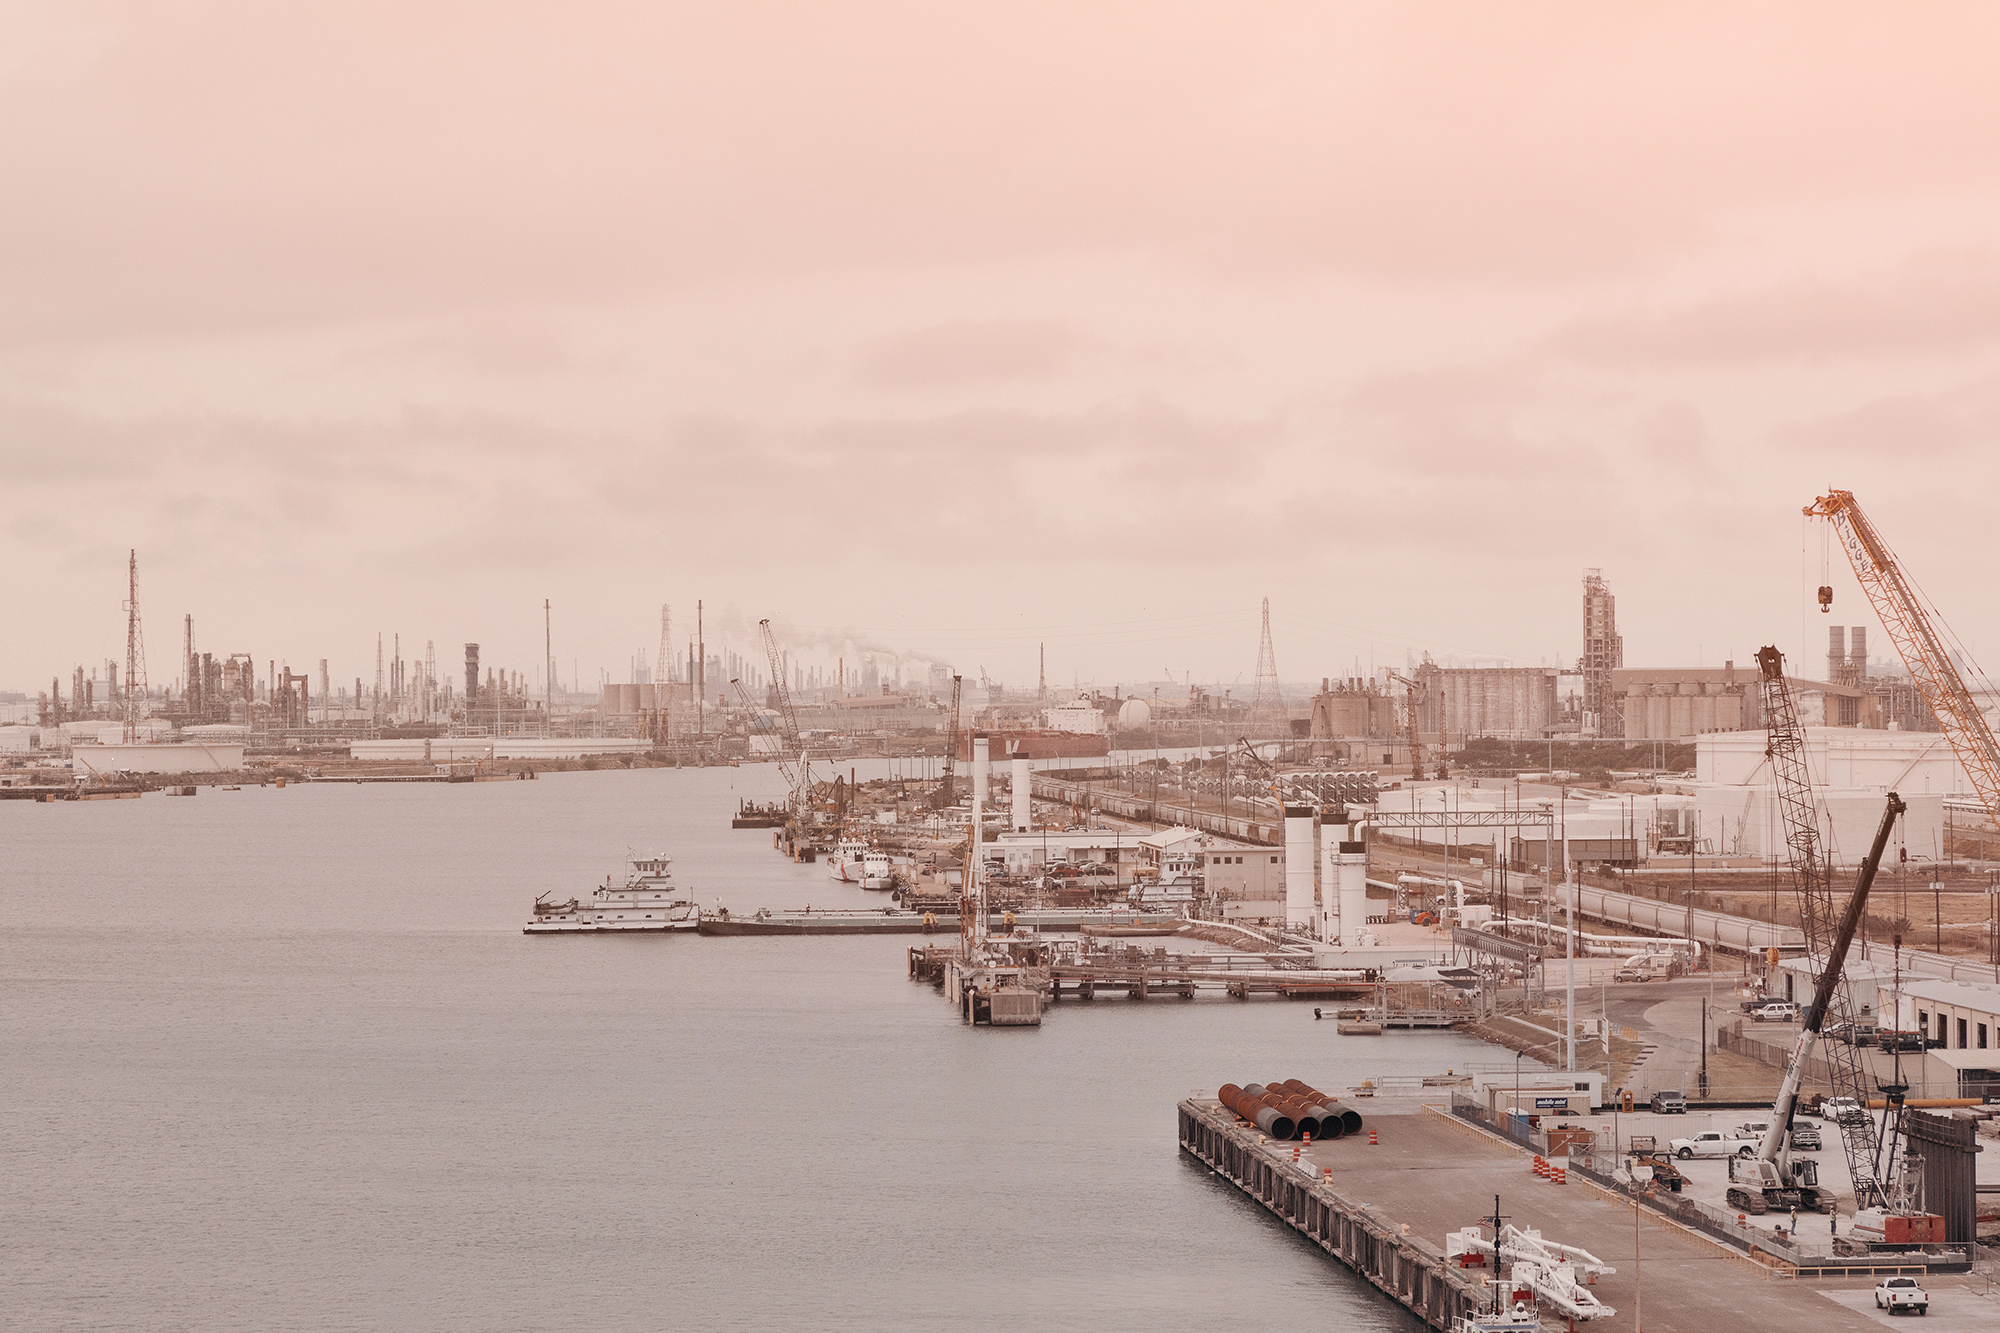 The port of Corpus Christi as seen from the Harbor Bridge, photographed for Texas Monthly magazine by editorial photographer, Todd Spoth.